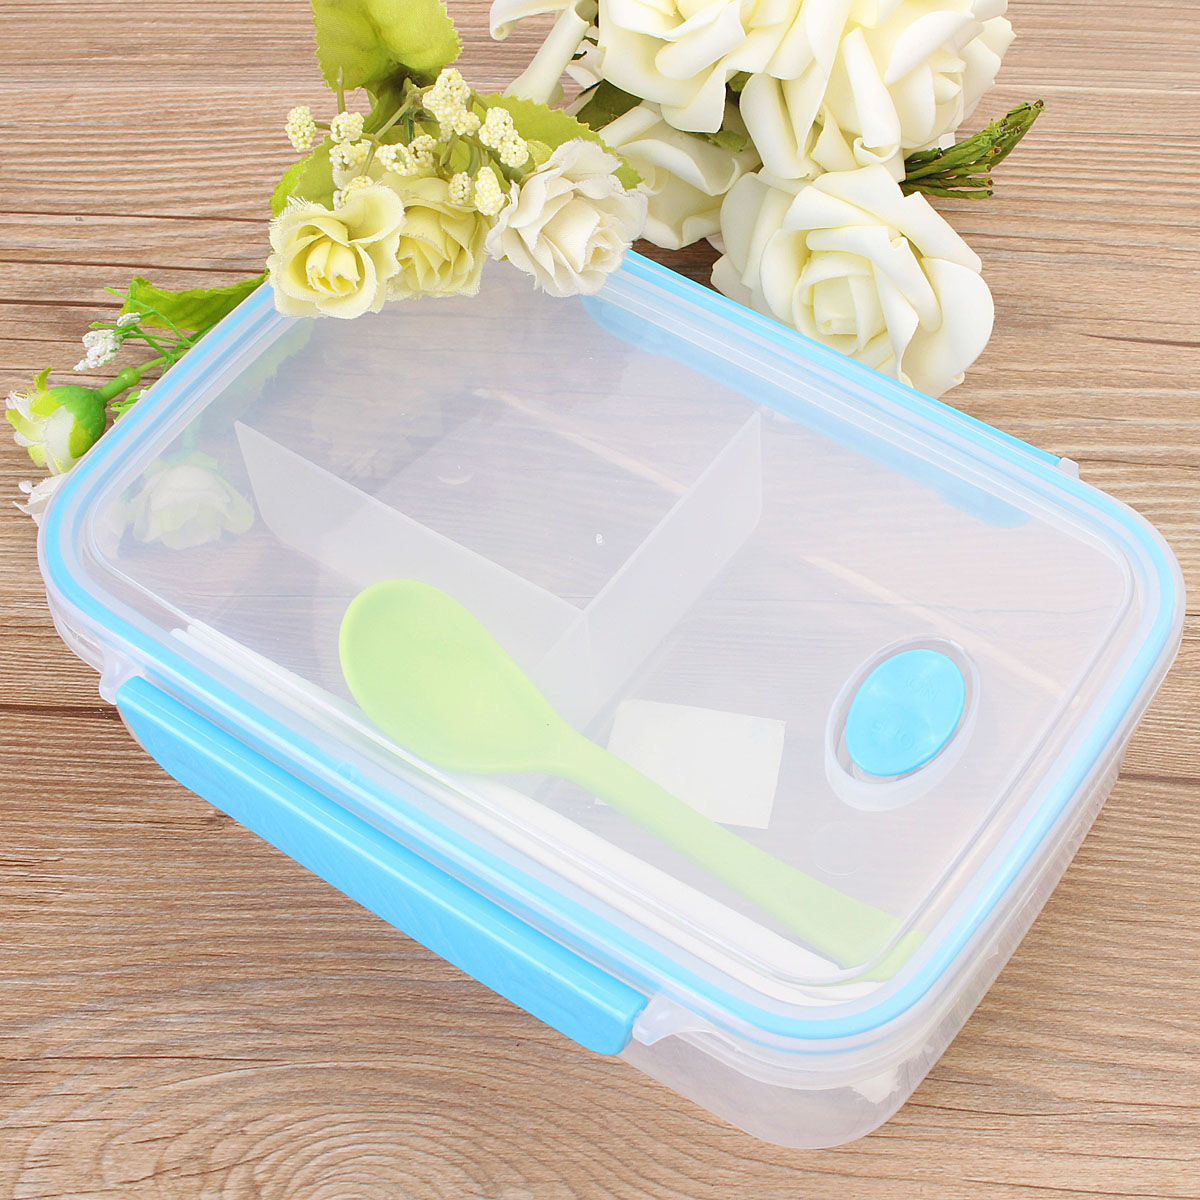 Plastic Bento Lunch Box Picnic Food Container Storage with Spoon Chopstick